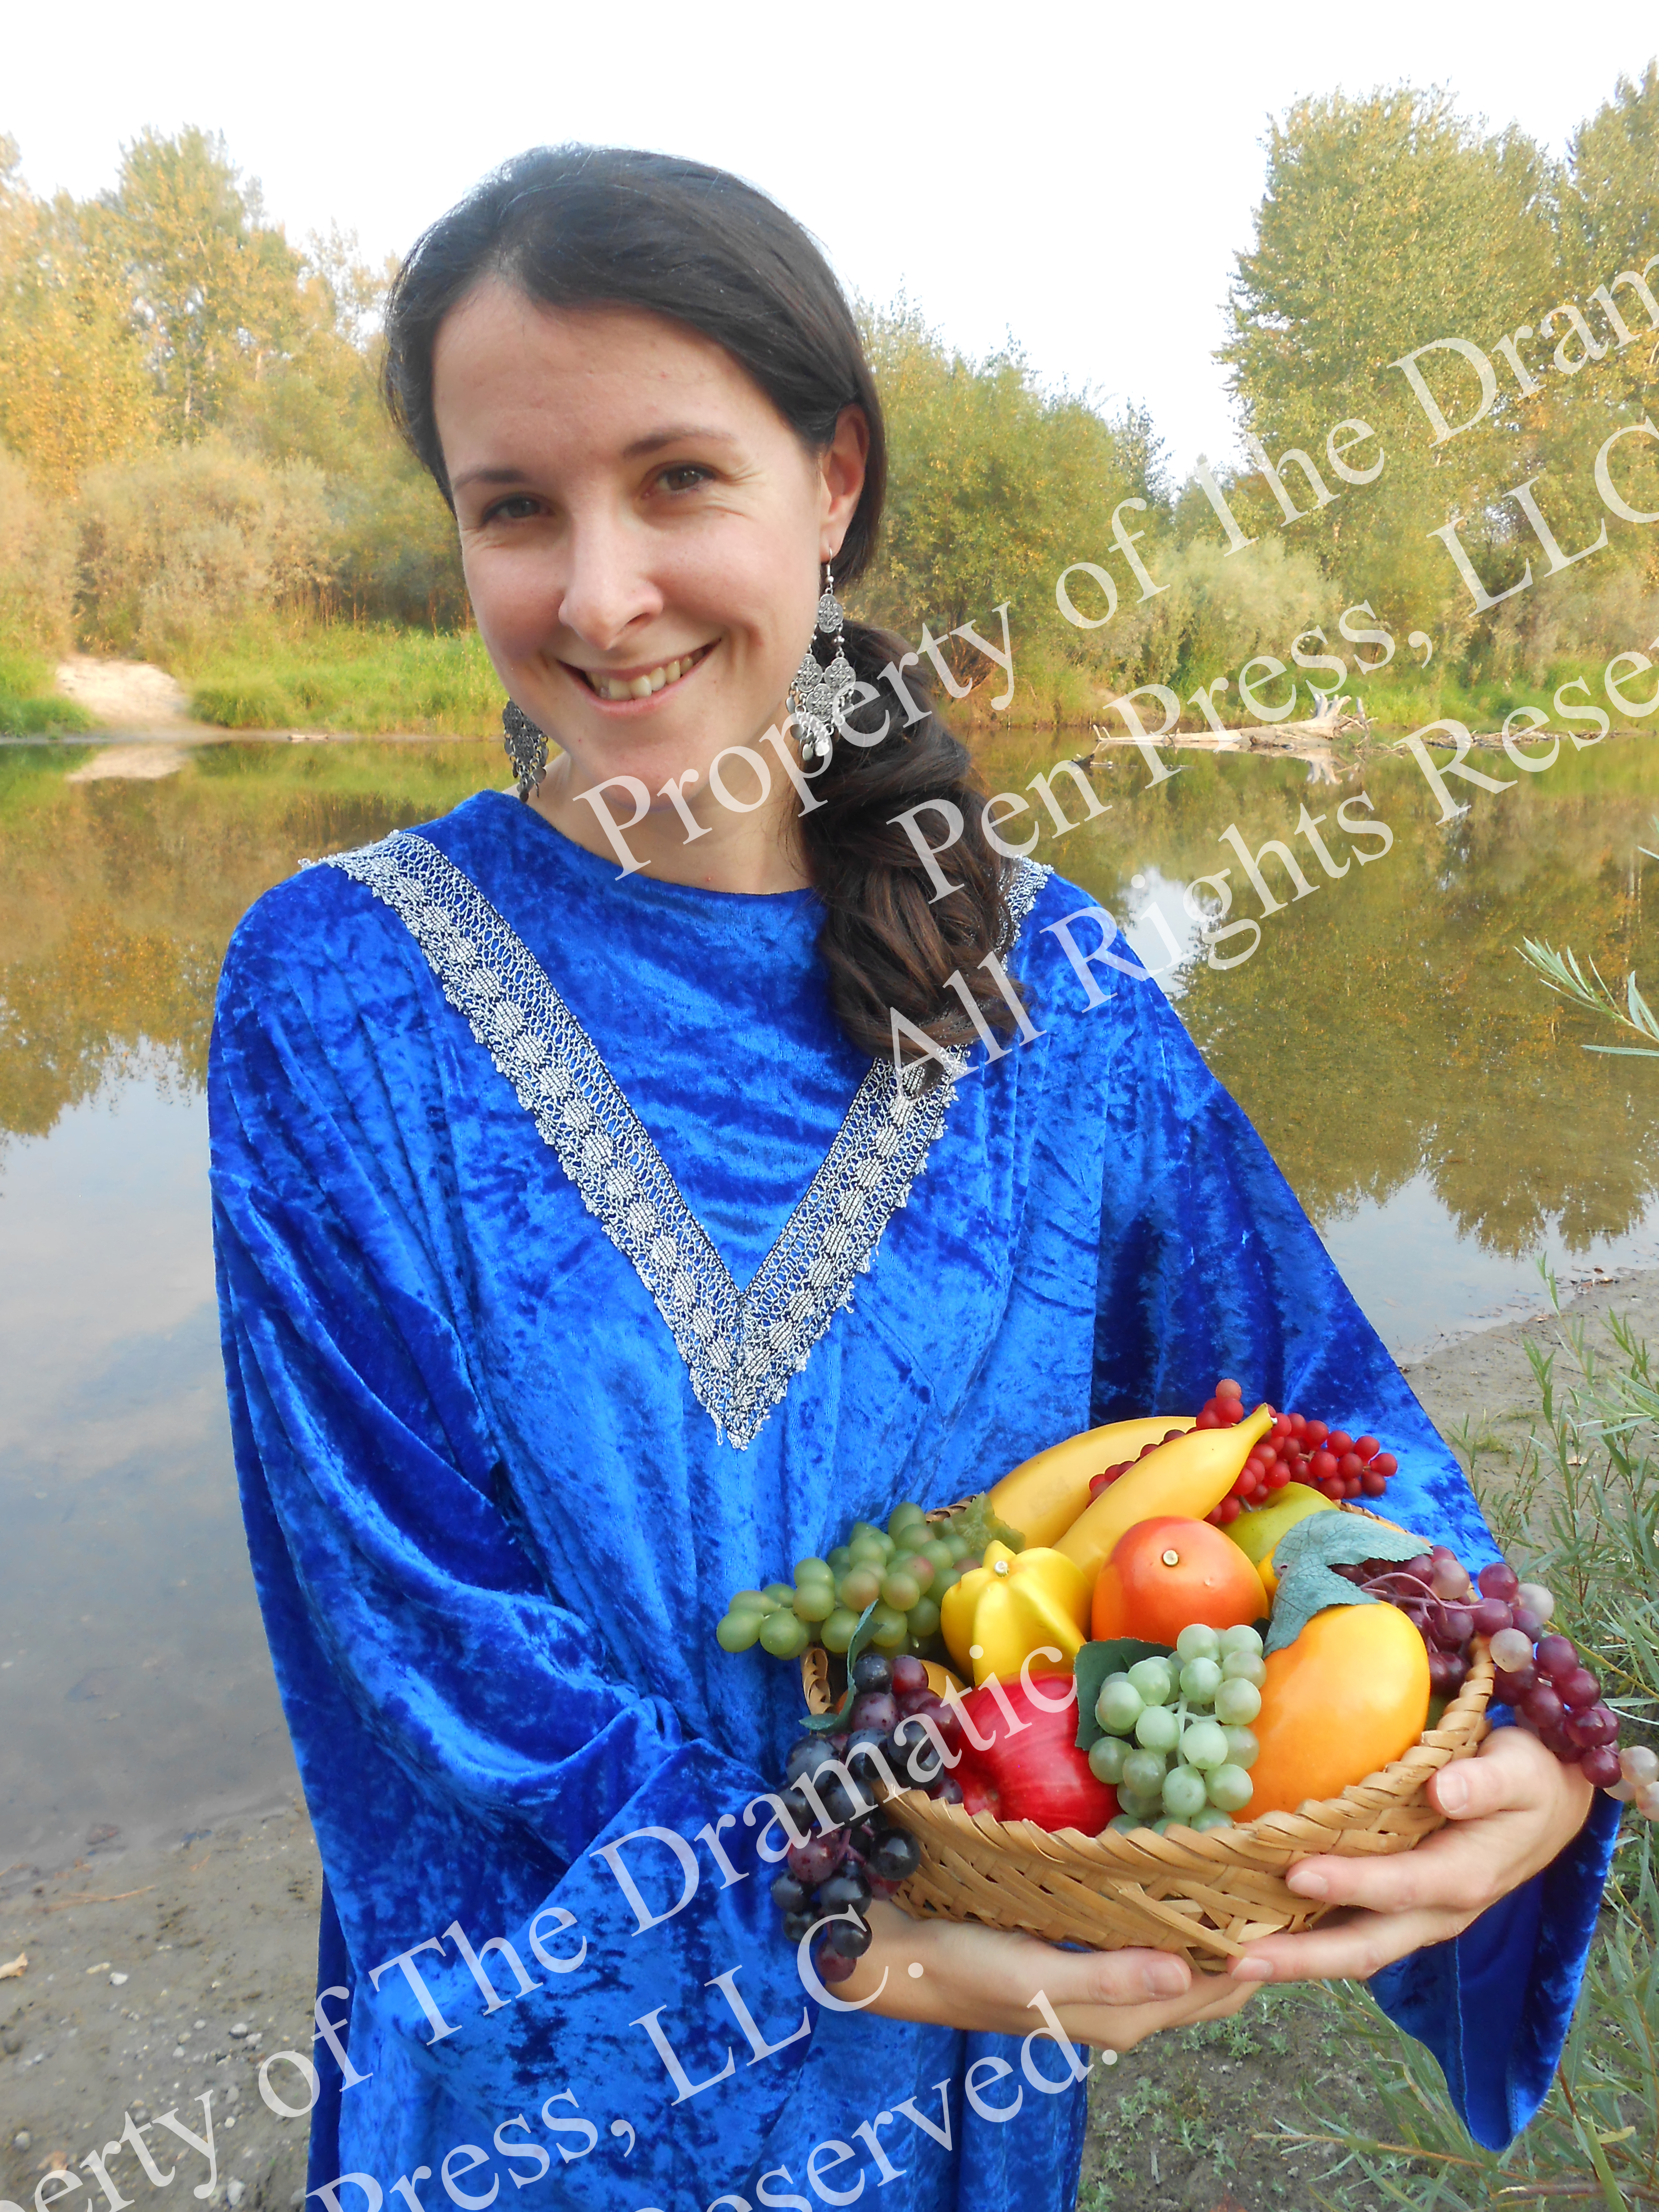 Biblical Woman with Fruit Smiling